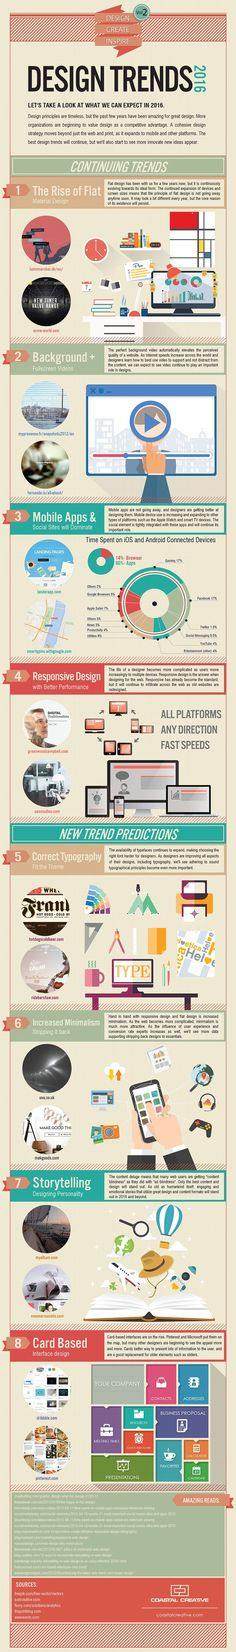 8 Web design trends for 2016 - Trends 2016 below and let us know your thoughts on these emerging trends and mainstays. Web Design Trends, Design Web, Visual Design, Website Design, Layout Design, Graphic Design Trends, Graphic Design Inspiration, Graphic Designers, Flat Design